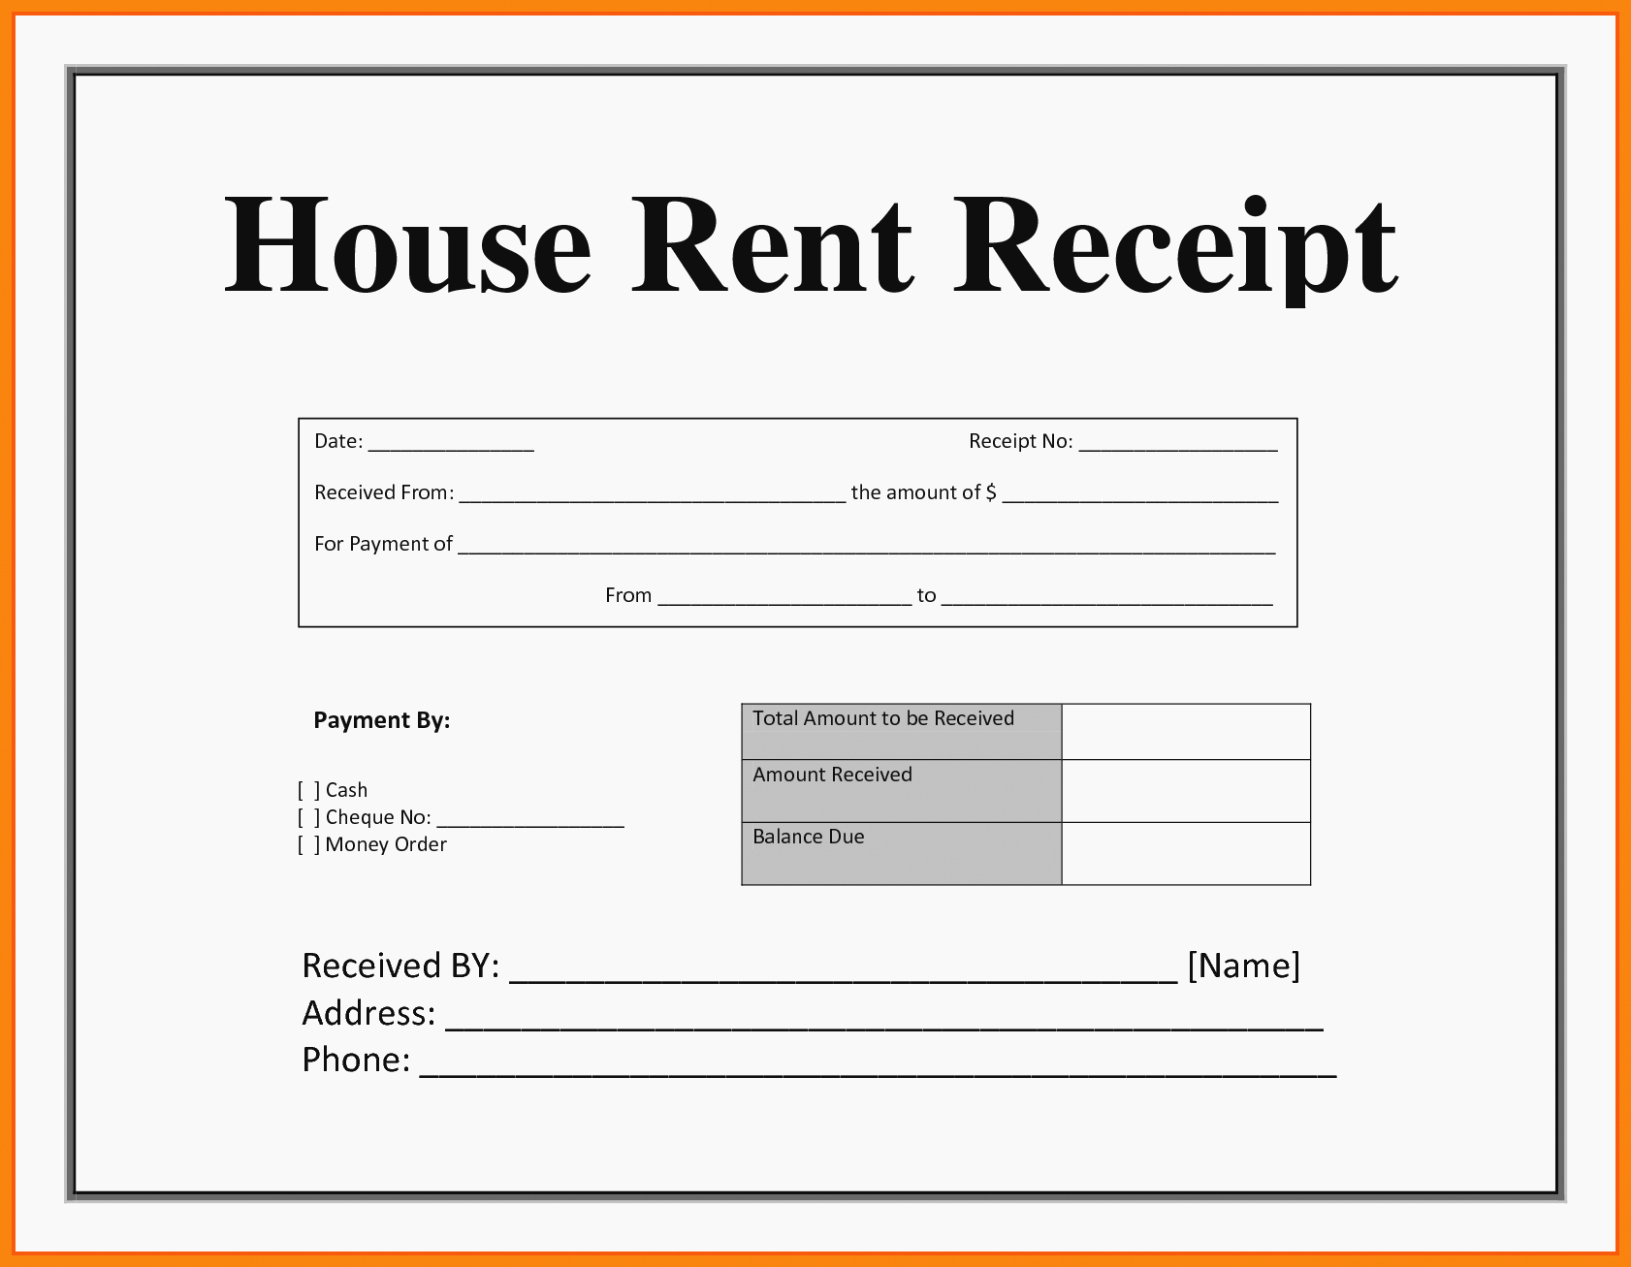 Rental Receipt Template Pdf Lovely Everything You Need to